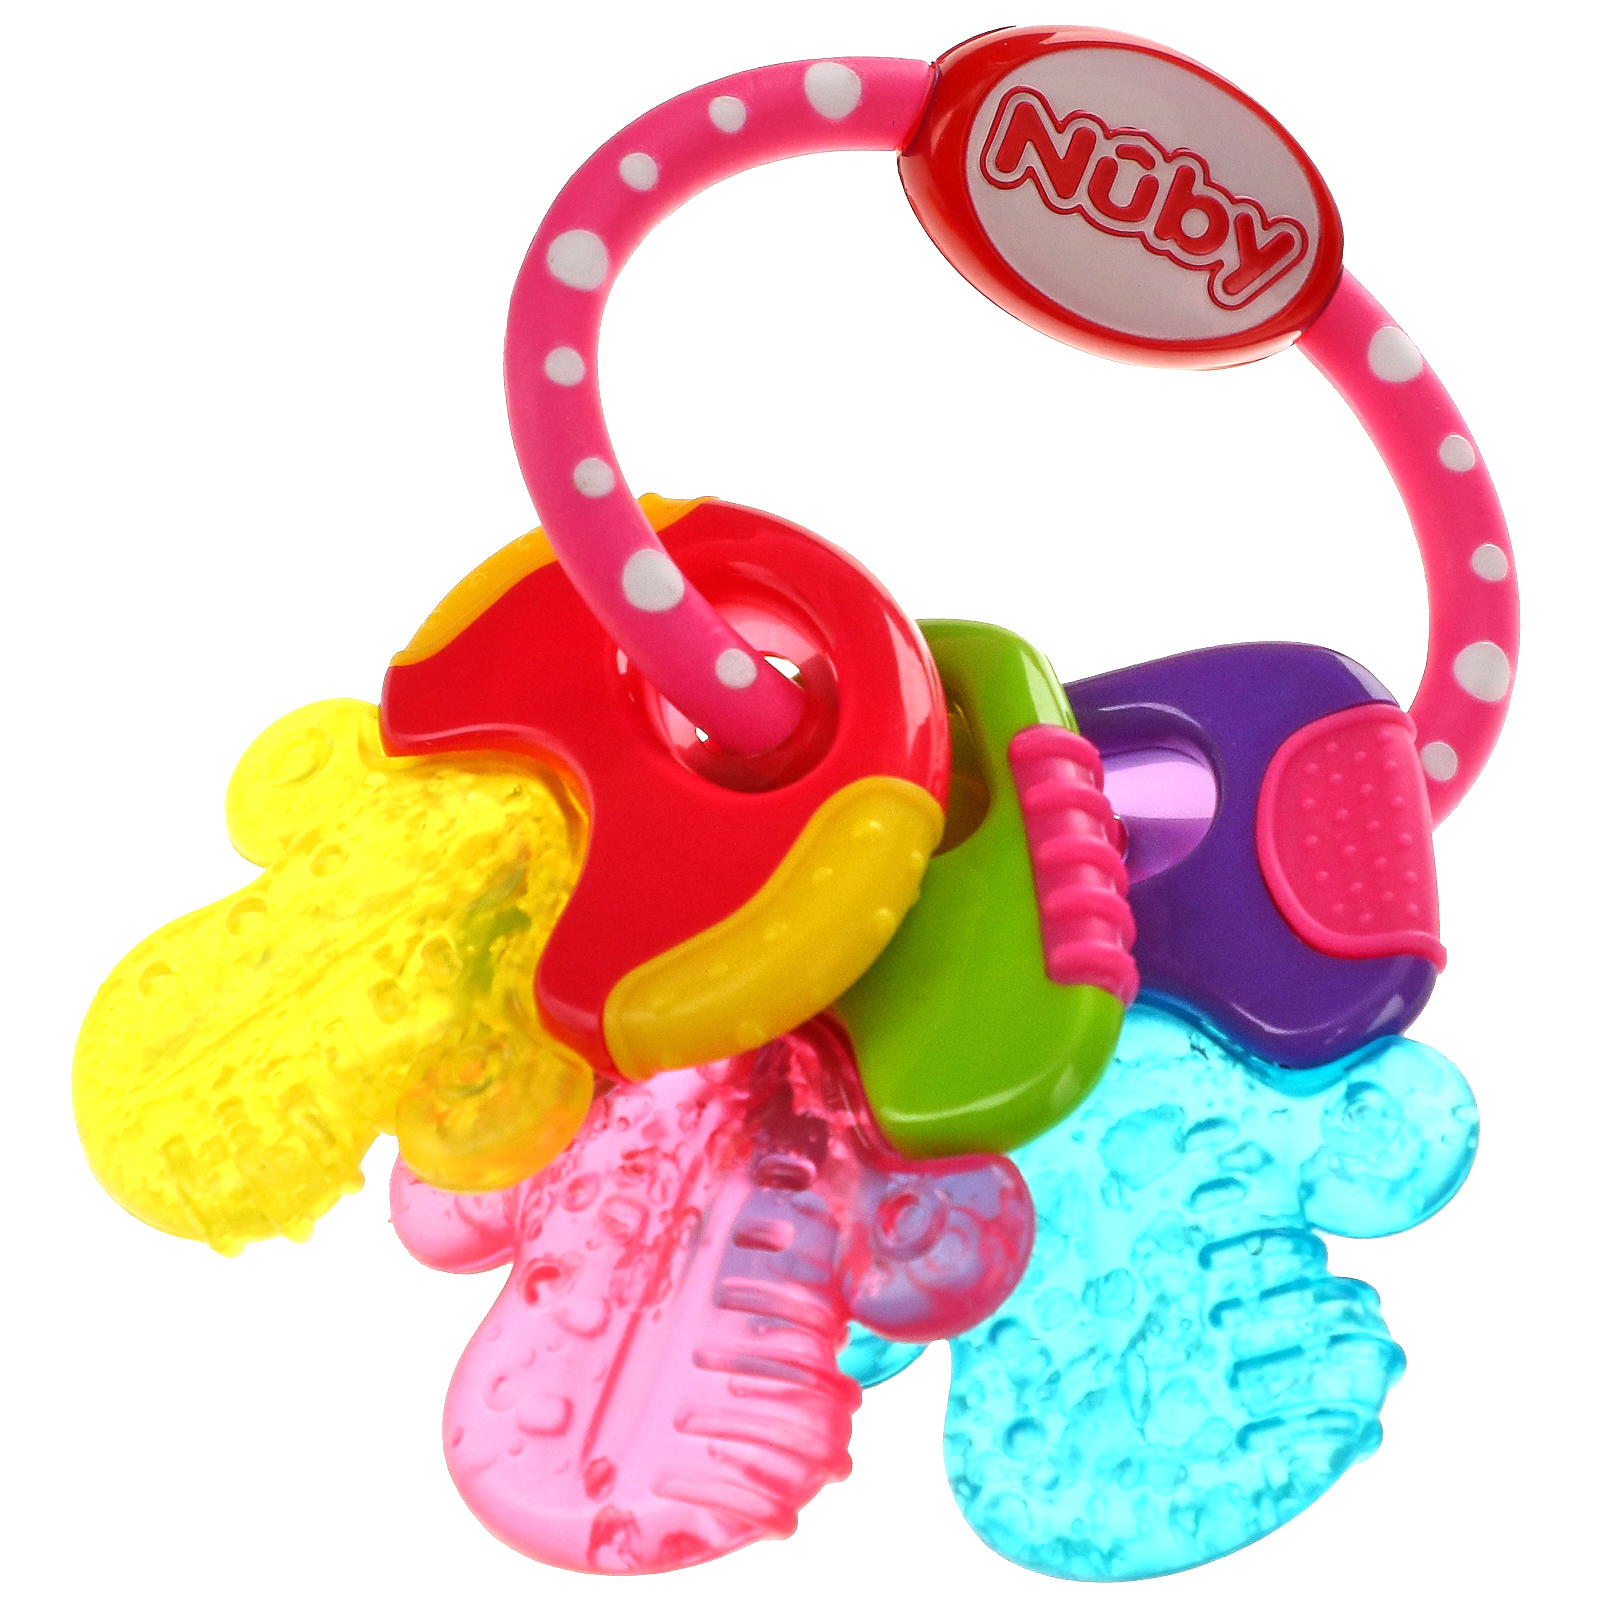 Nuby, Soothing Teether, Icy Bite Keys, 3+ Months, Perfectly Pink, 1 Count